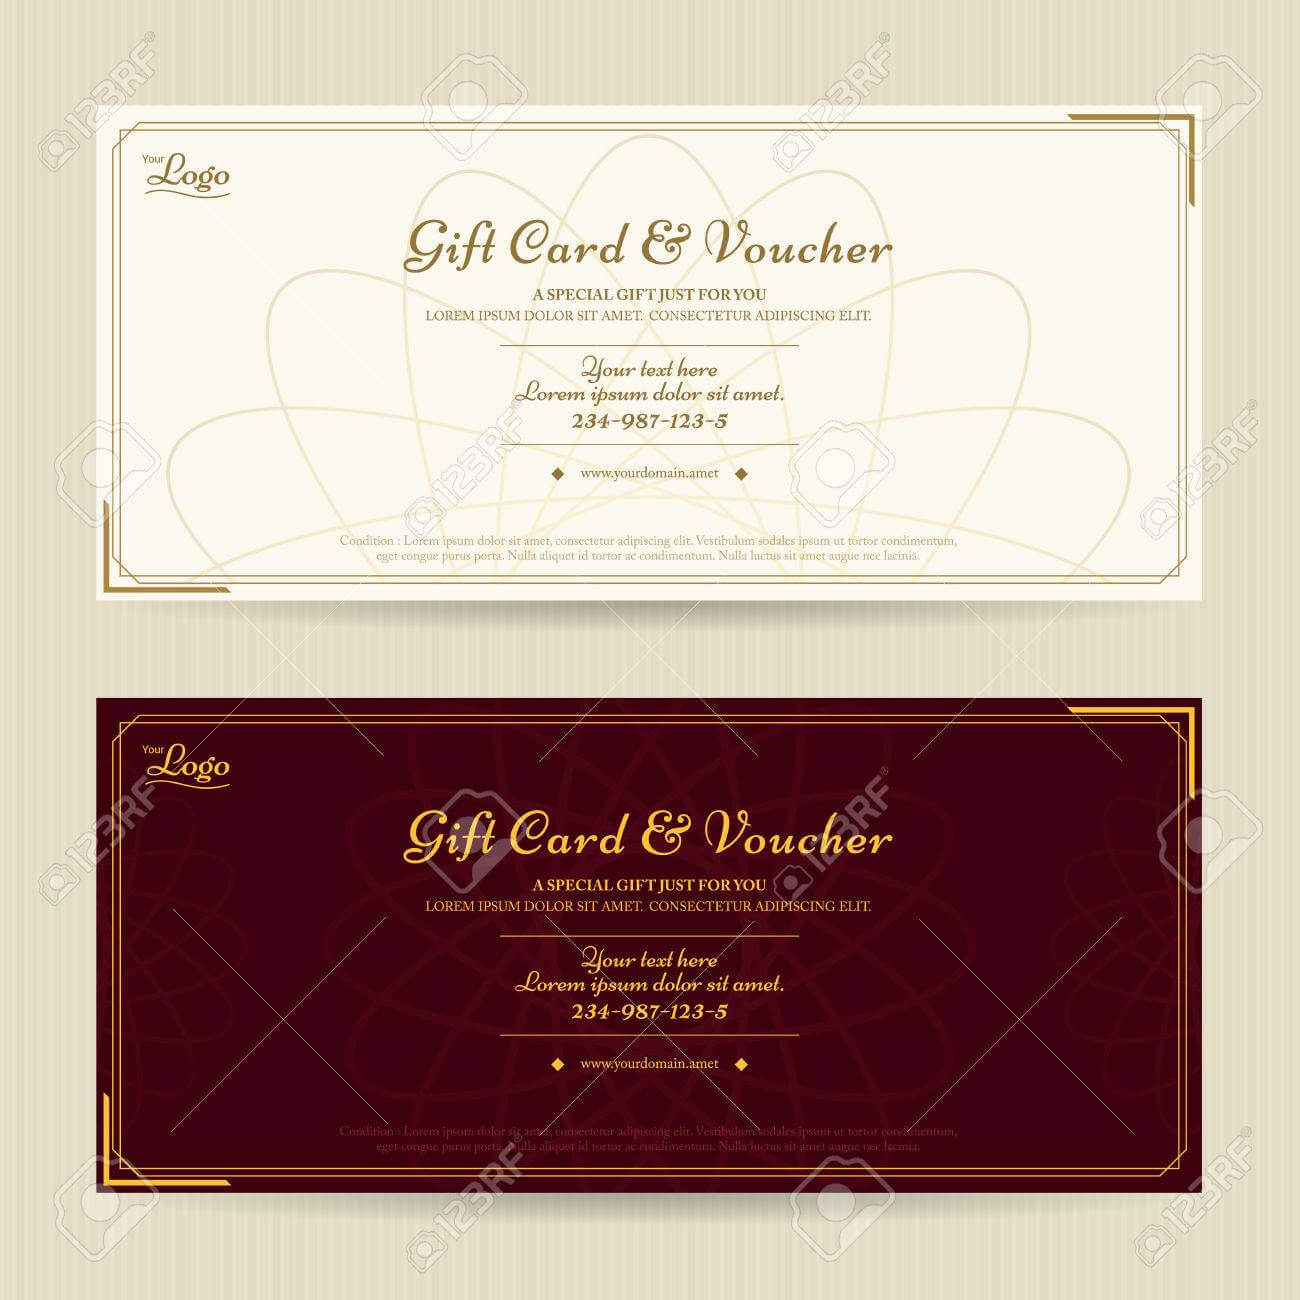 Elegant Gift Voucher Or Gift Card Template With Gold Border Throughout Elegant Gift Certificate Template